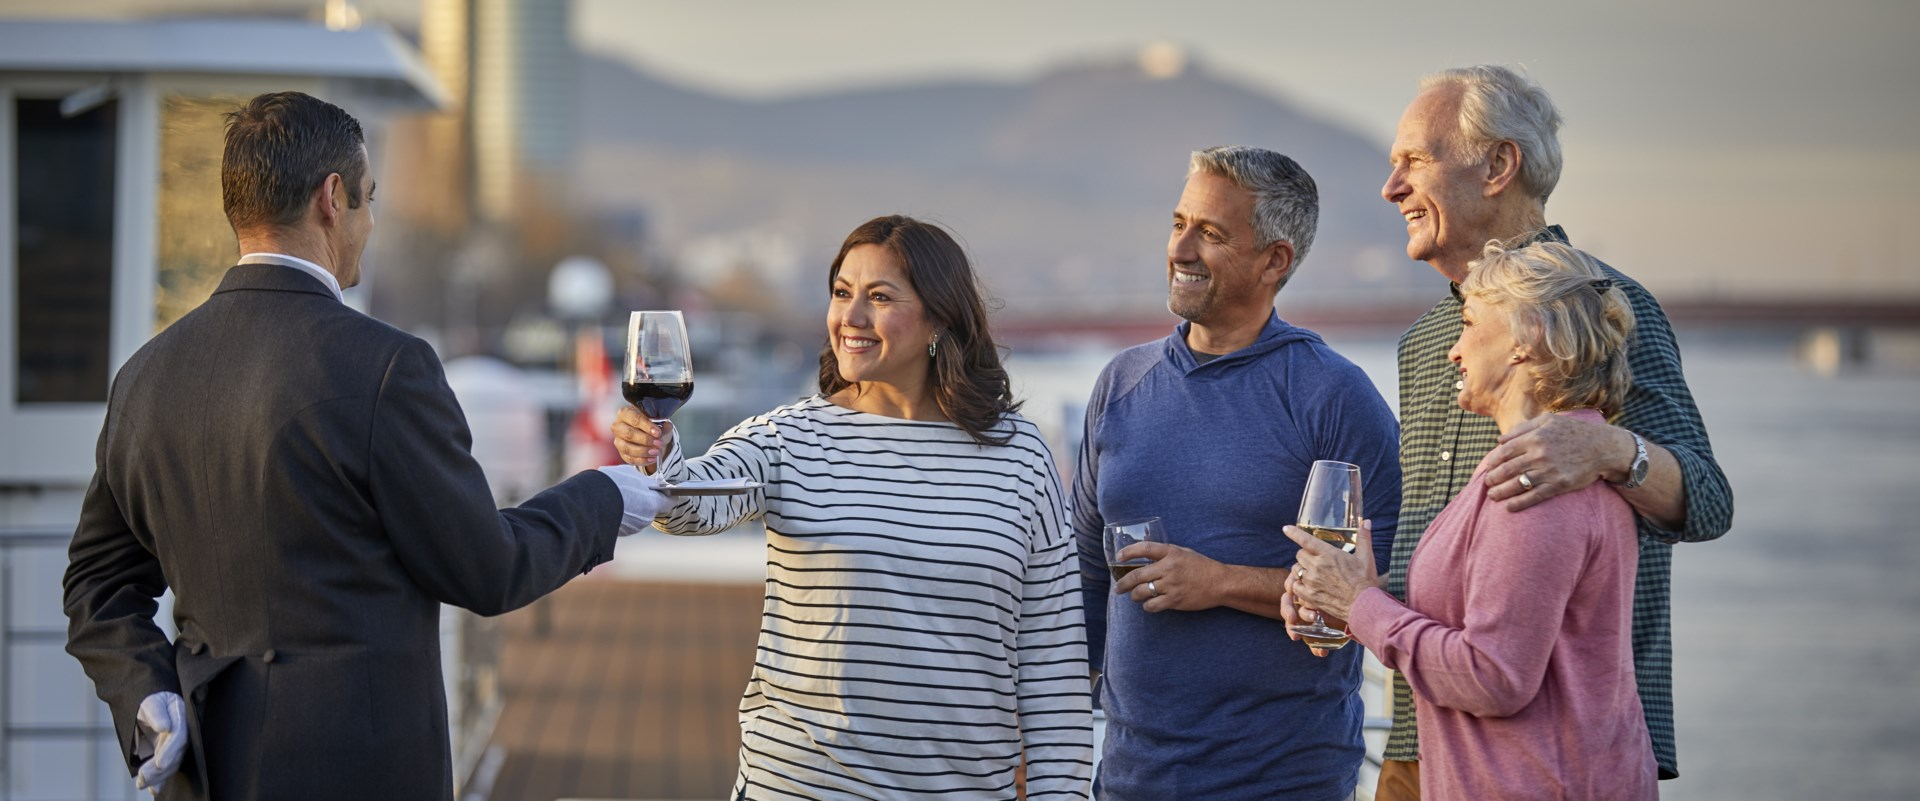 BOOK YOUR 2022 RIVER CRUISE WITH ABSOLUTE CONFIDENCE